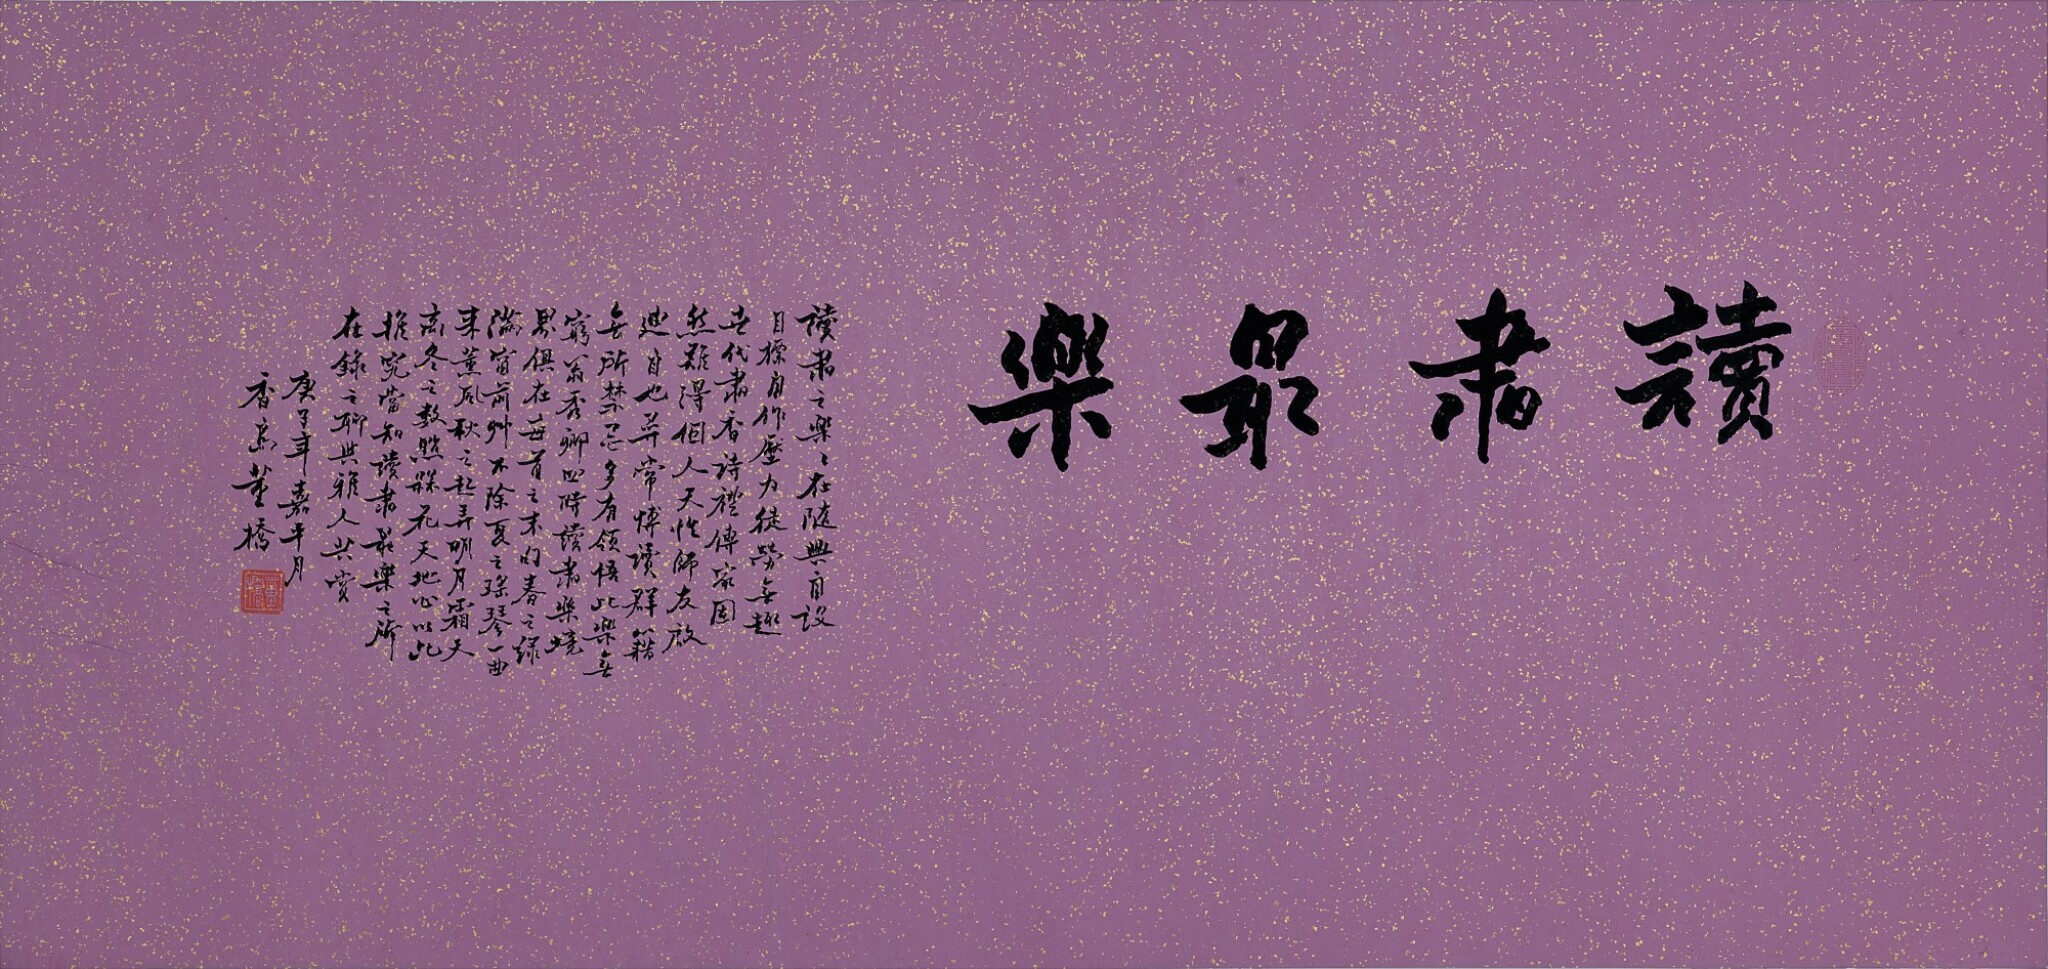 View full screen - View 1 of Lot 2554. Tung Chiao 董橋 | The Joy of Reading 讀書最樂.